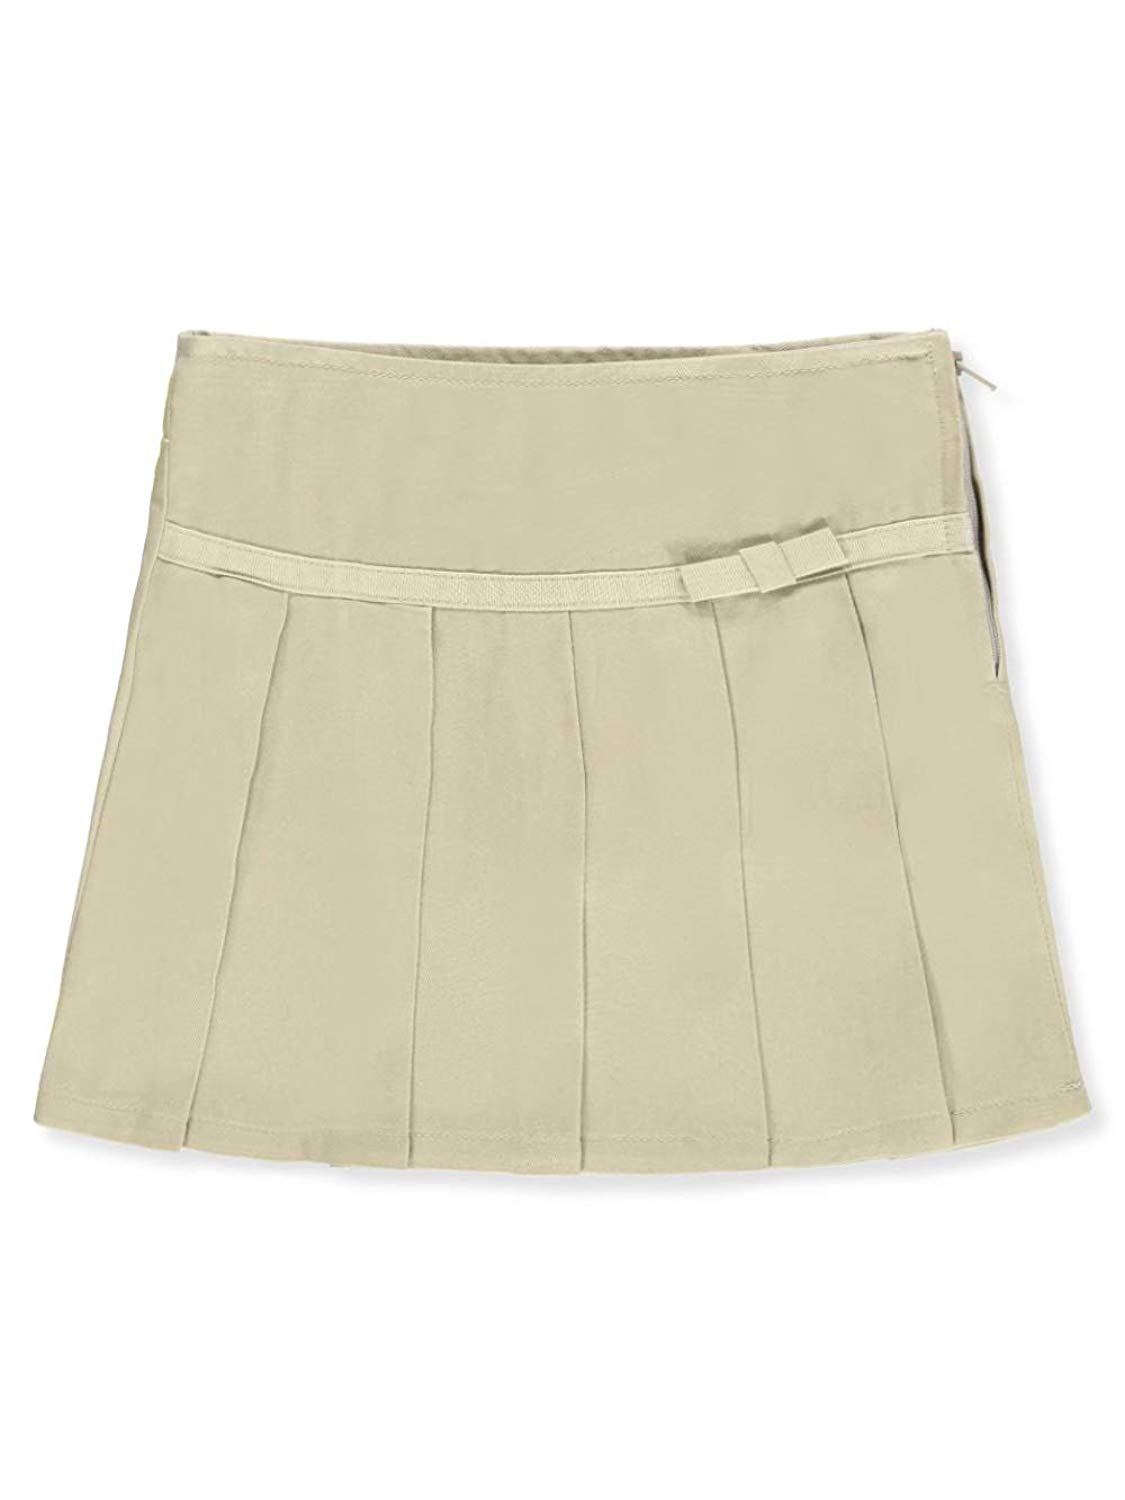 04af4547b1 Get Quotations · French Toast Big Girls' Pleated Scooter Skirt - Khaki, ...